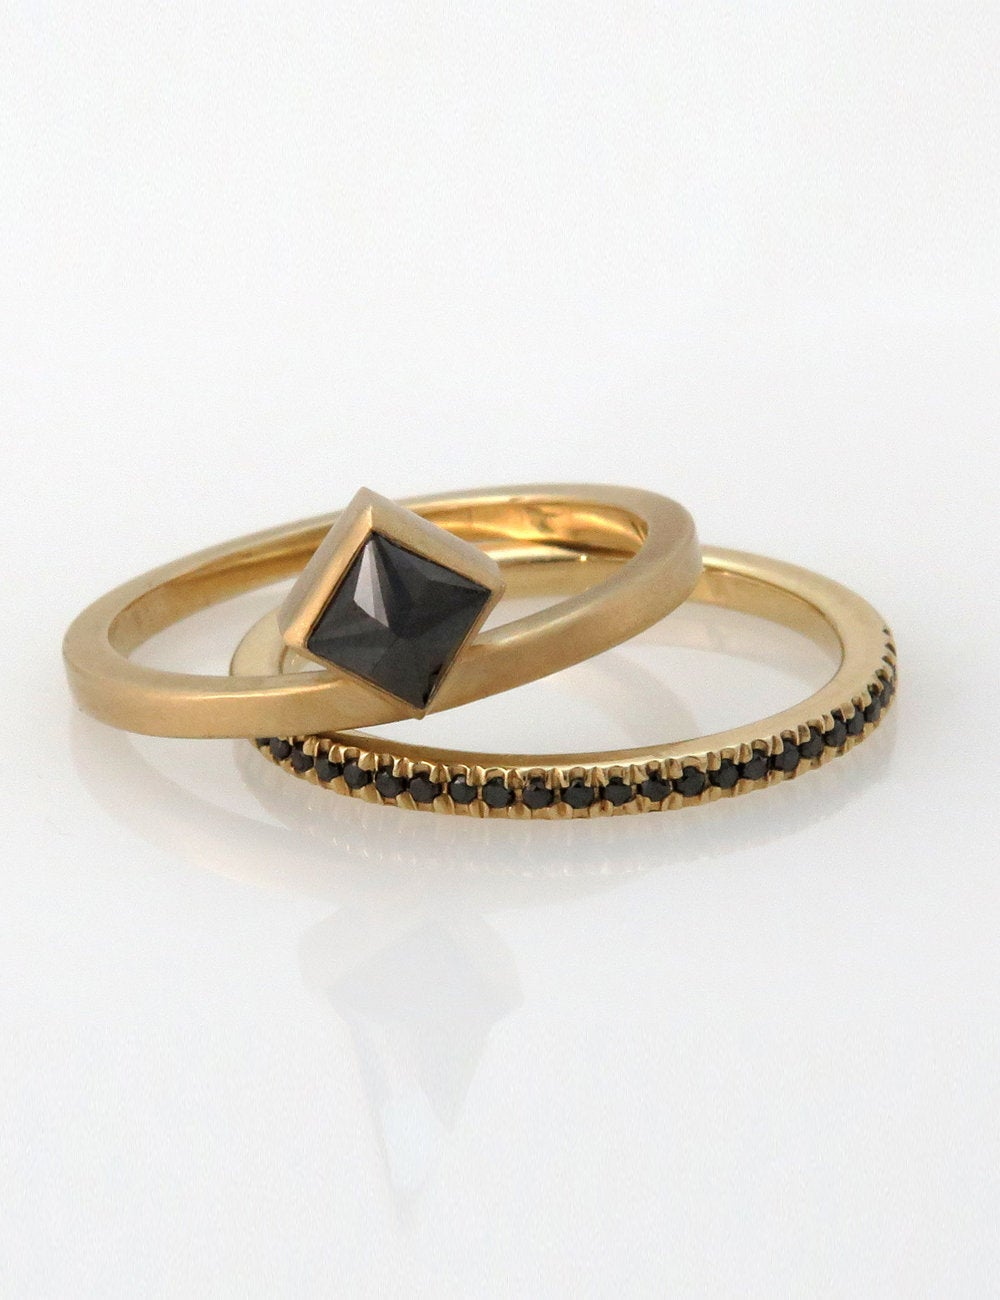 Black Diamond Engagement Ring Set, Princess Cut Boho Black Eternity Band, Minimalist Modern Set